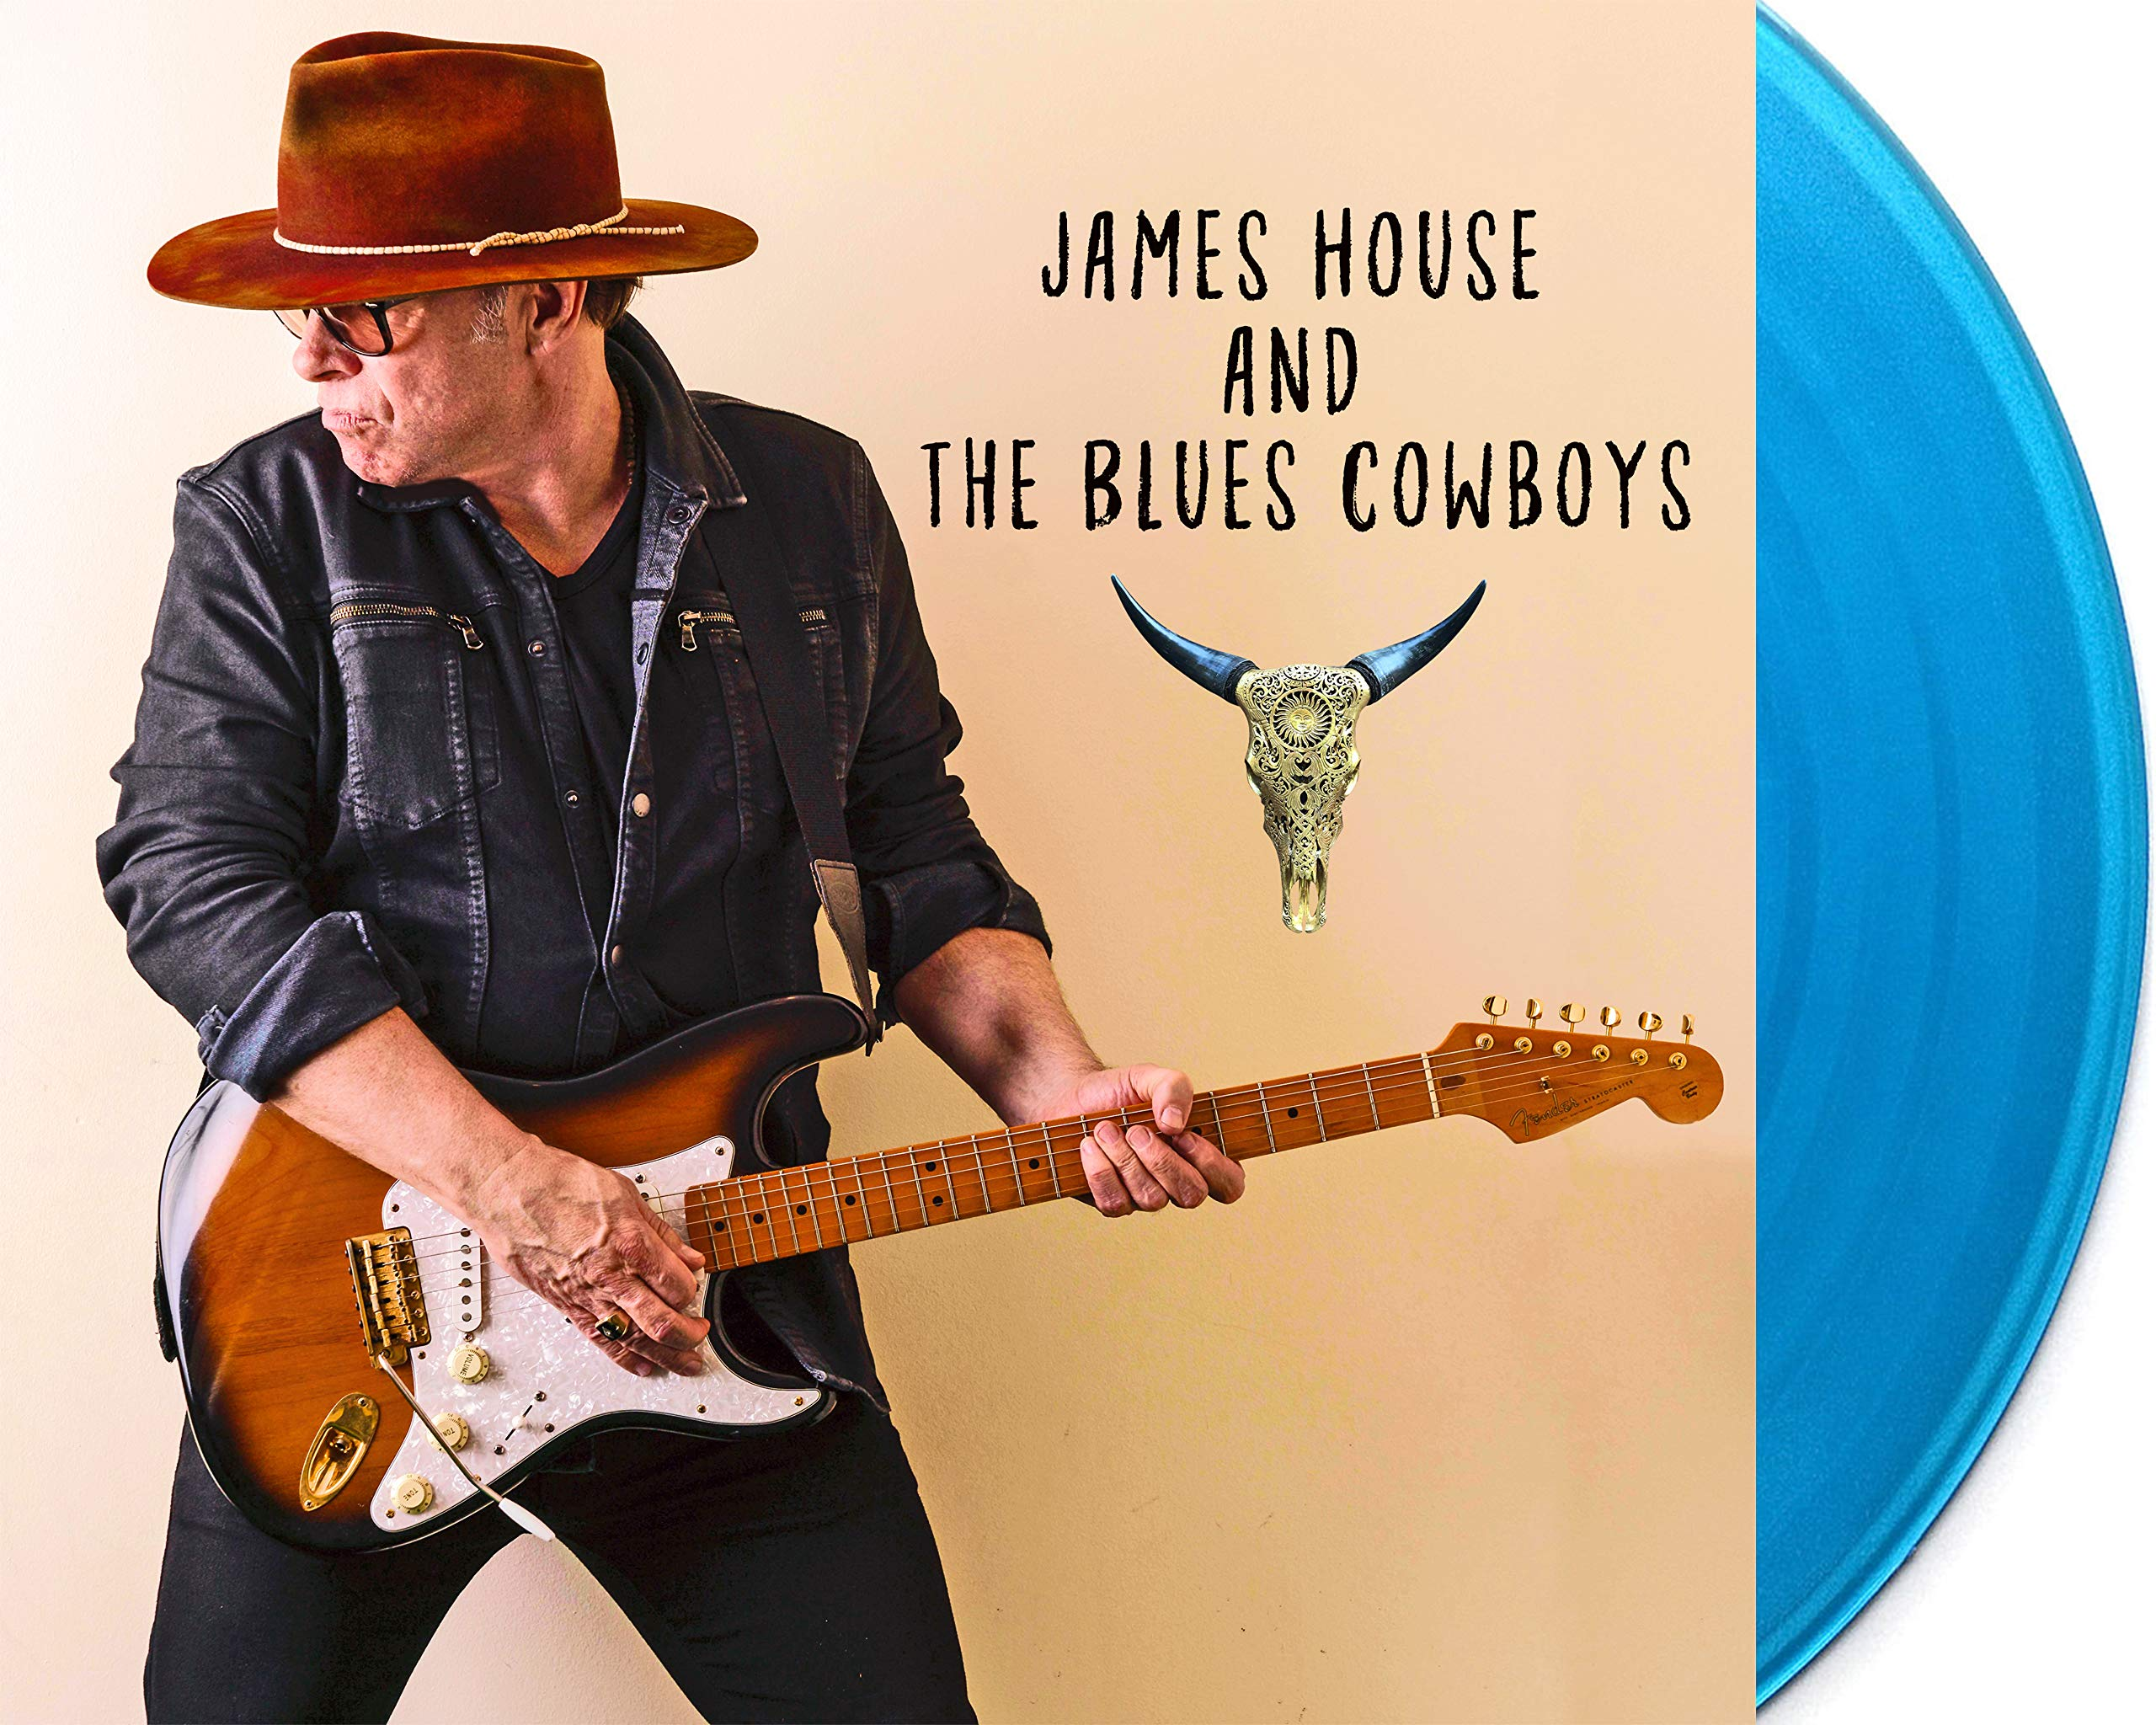 Vinilo : JAMES HOUSE AND THE BLUES COWBOYS - James House & Blues Cowboys (LP Vinyl)